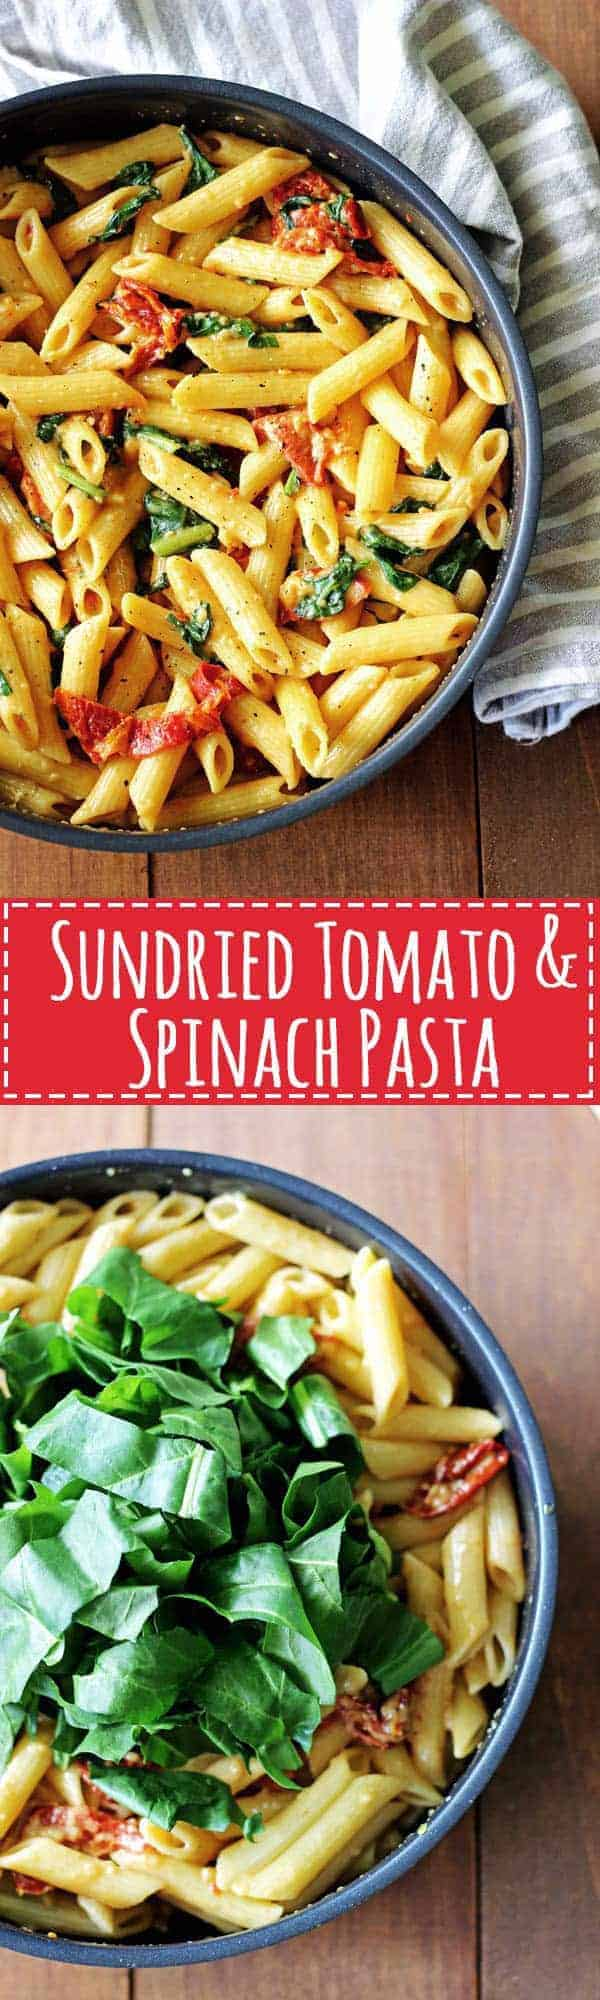 Sundried Tomato & Spinach Pasta - the ultimate in flavour packed comfort food! Plus it's a meal that's ready in 40 minutes! | thekiwicountrygirl.com